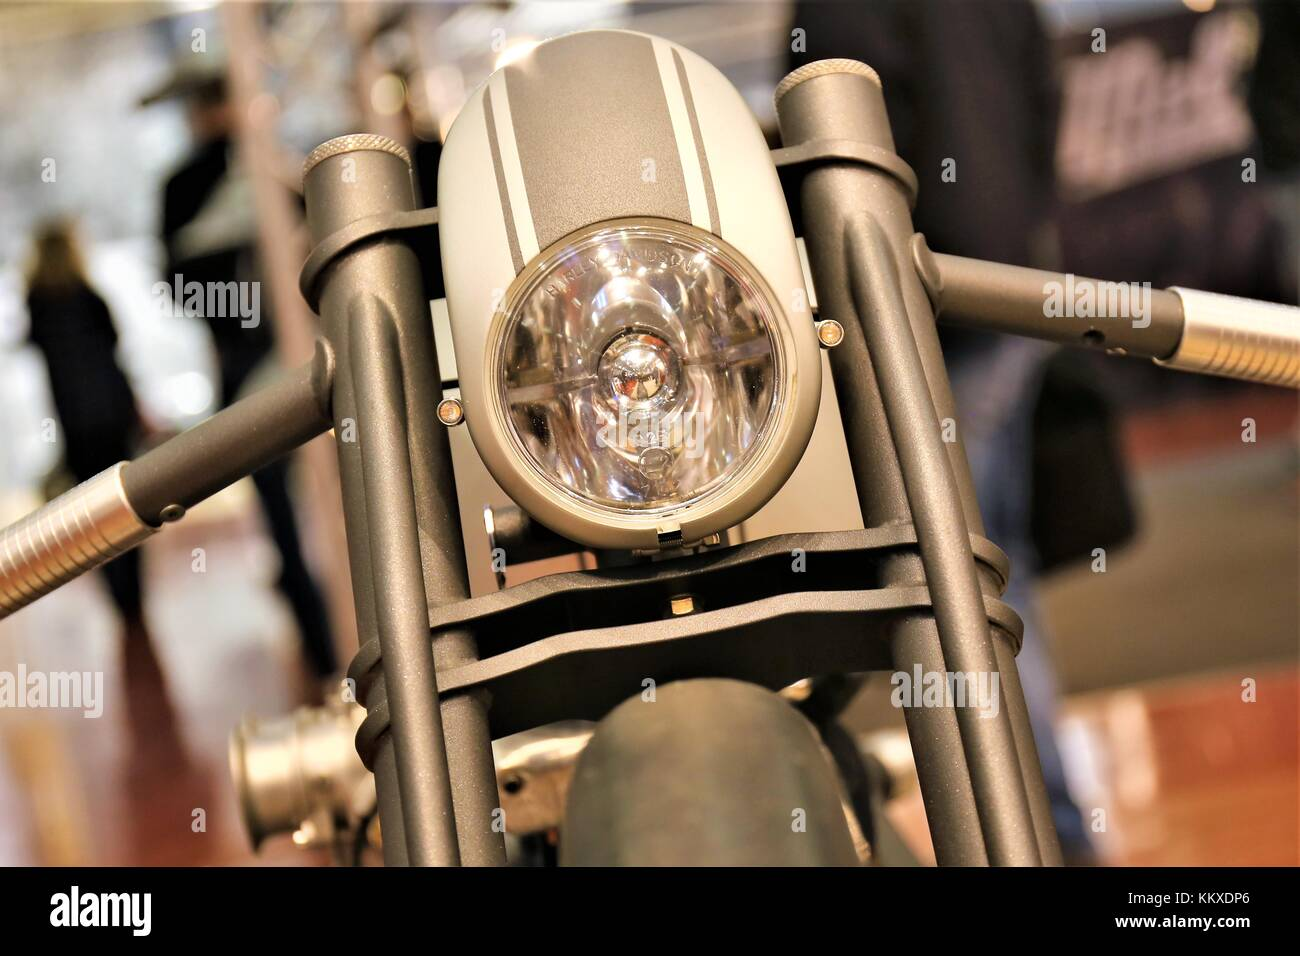 Bad Salzuflen, Germany. 2nd Dec, 2017. Motorcycle from the Custombike 2017 - THE WORLDS LARGEST EXHIBITION FOR MODIFIED - Stock Image